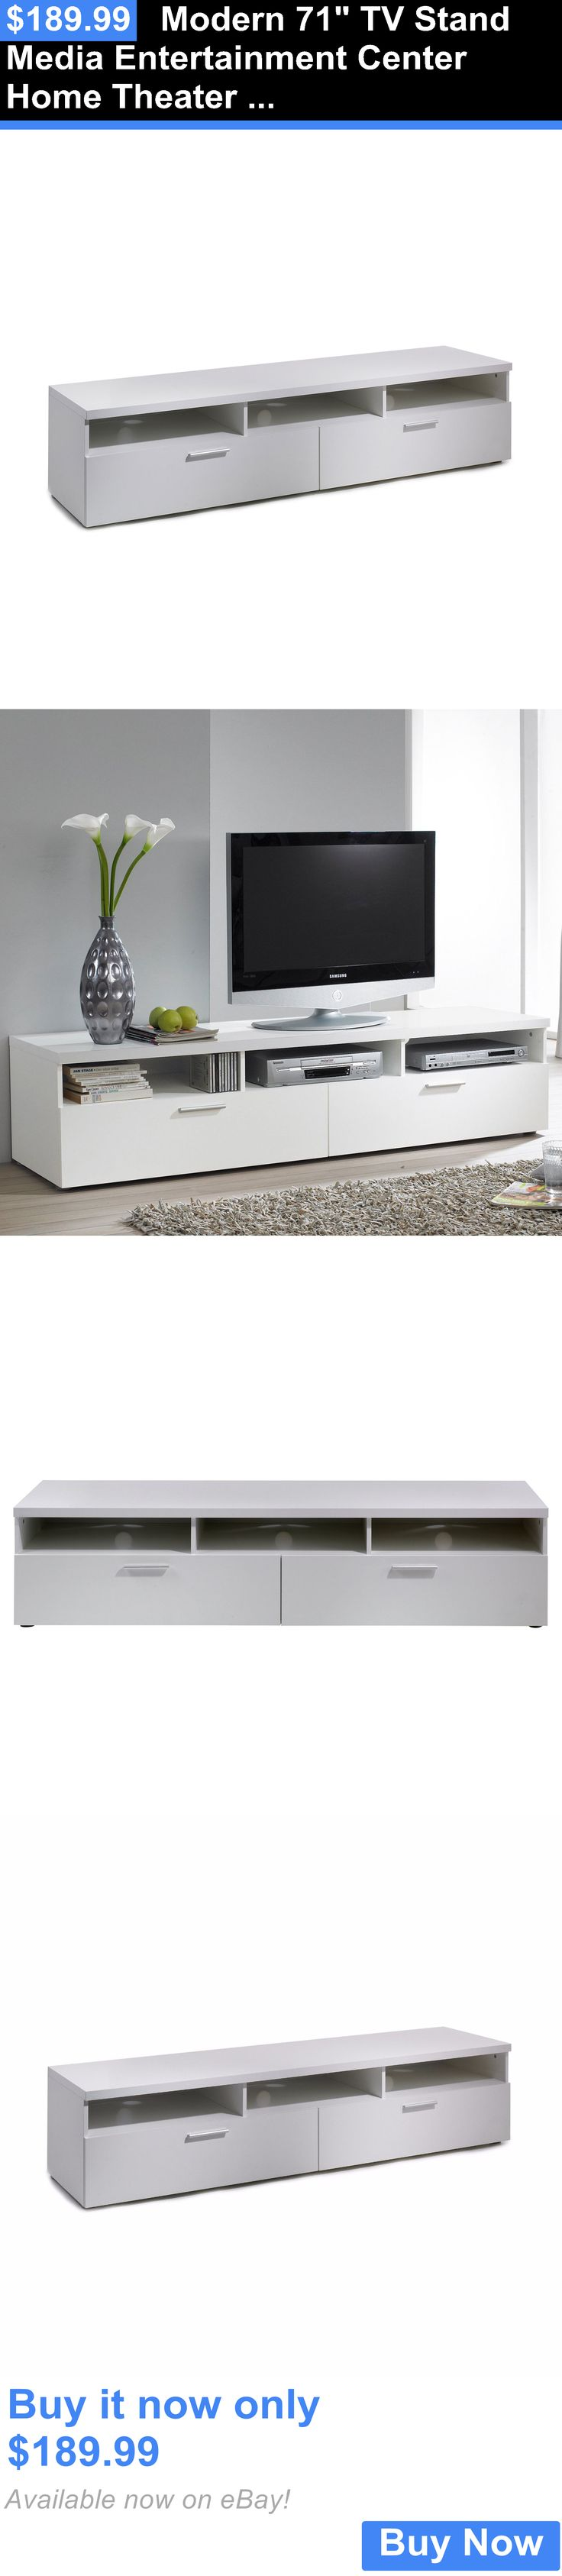 Entertainment Units TV Stands: Modern 71 Tv Stand Media Entertainment Center Home Theater Wood Console, White BUY IT NOW ONLY: $189.99